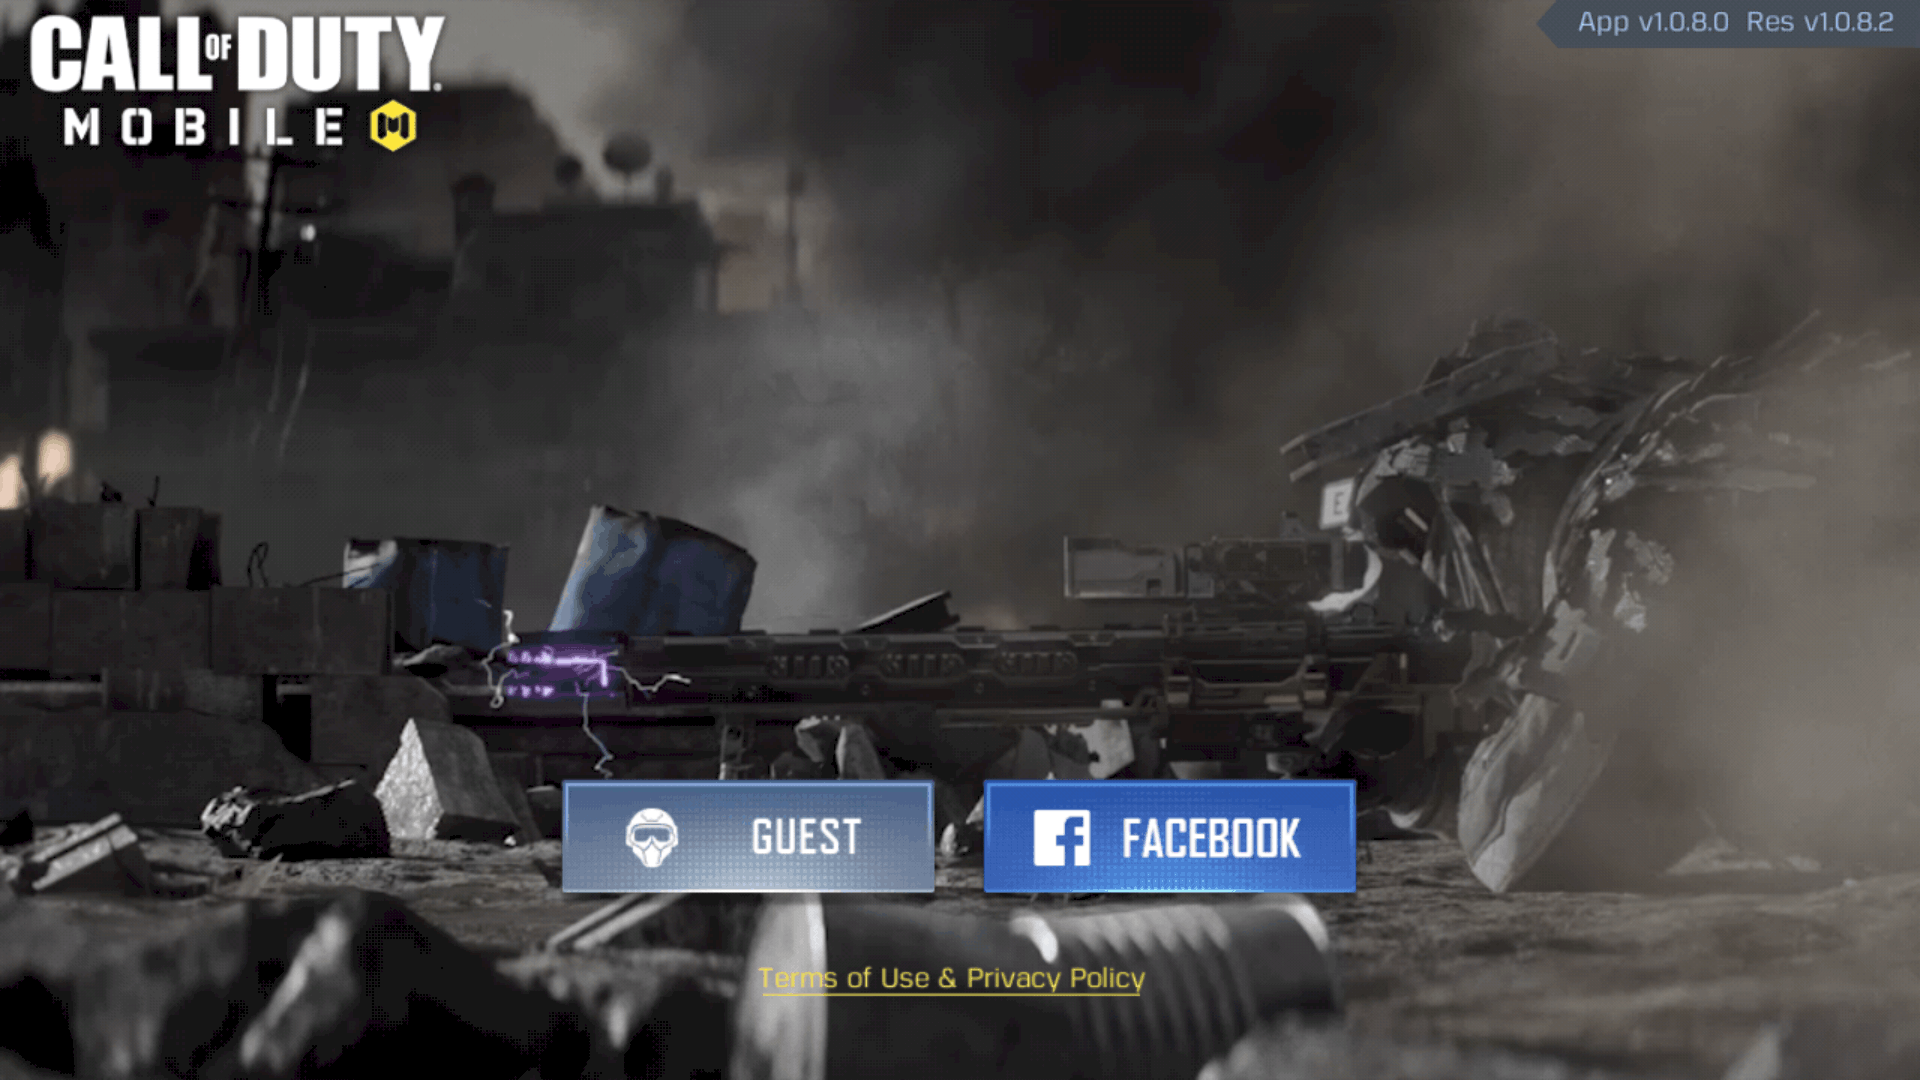 Call of Duty Mobile Facebook linking 2